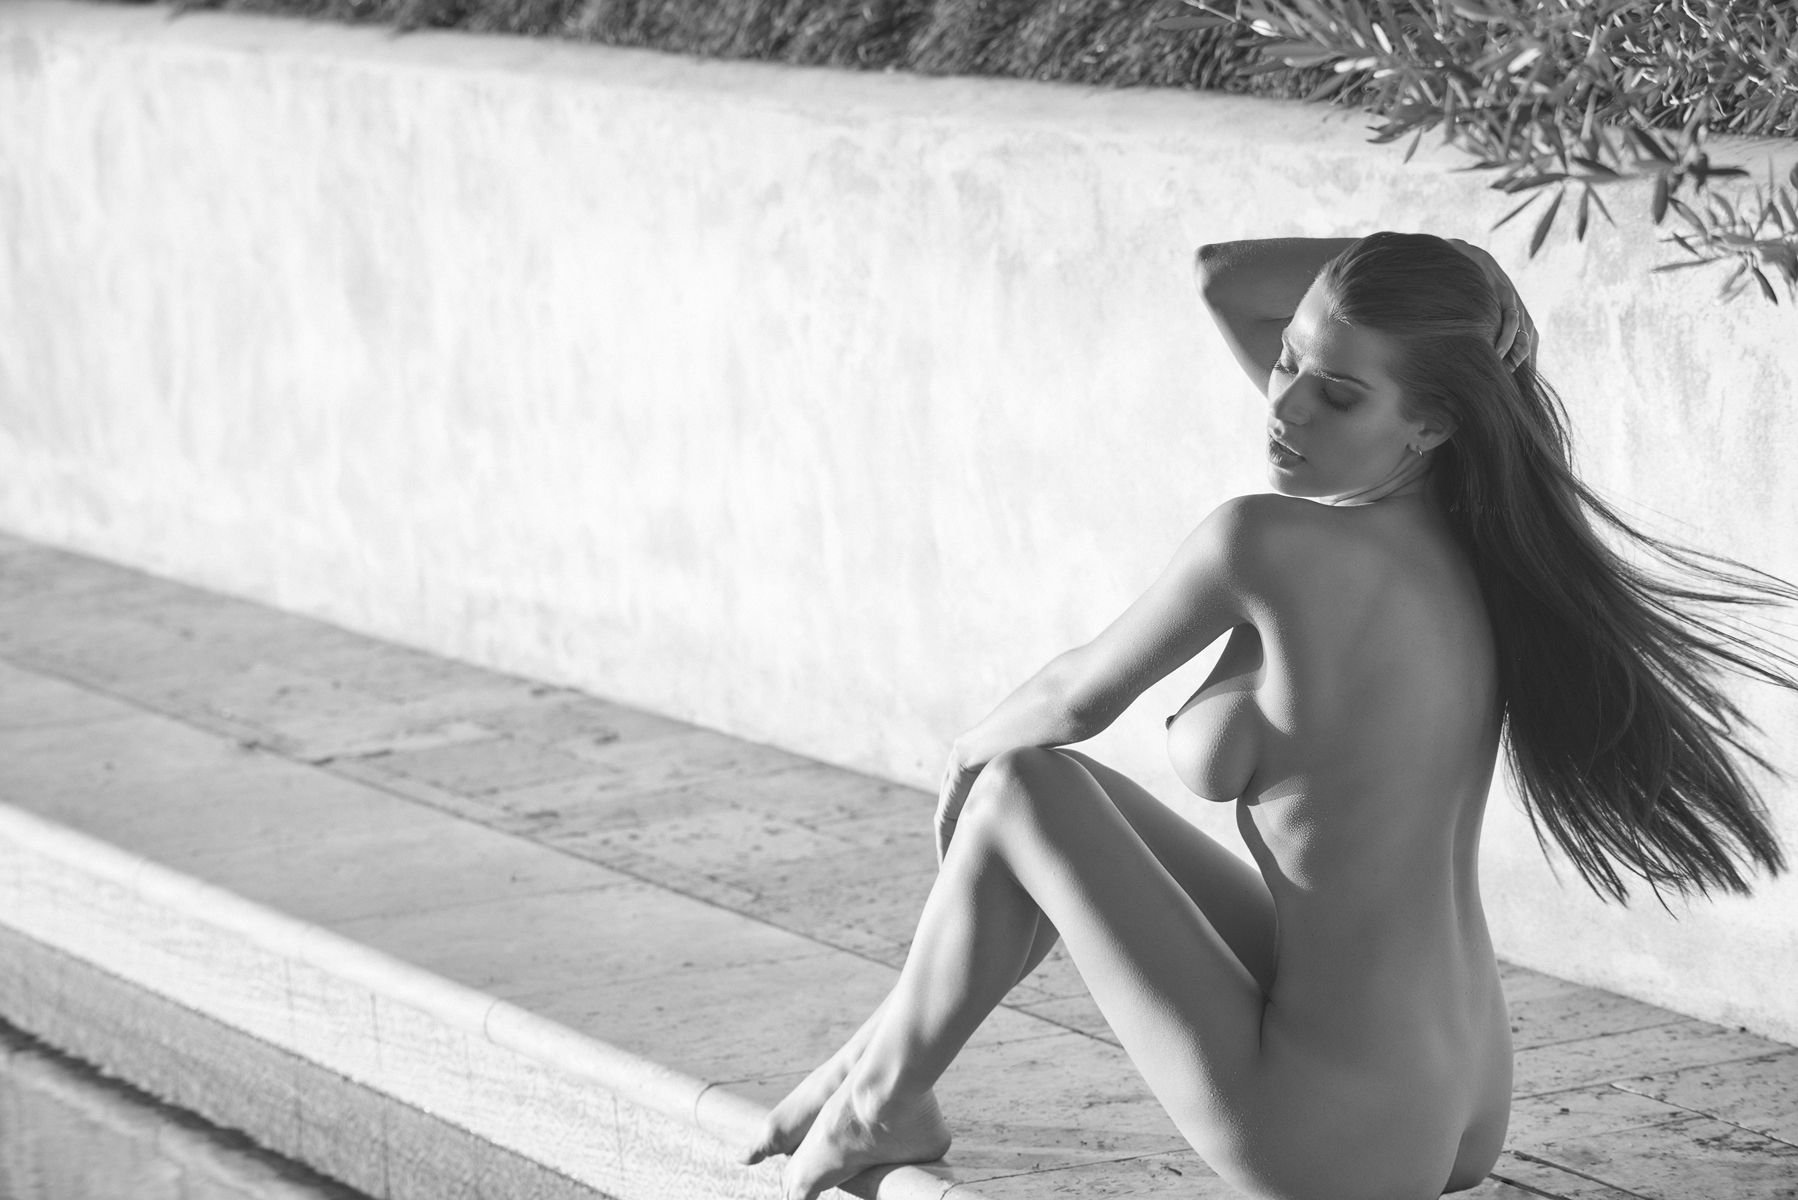 You have Brianna lauer topless model excited